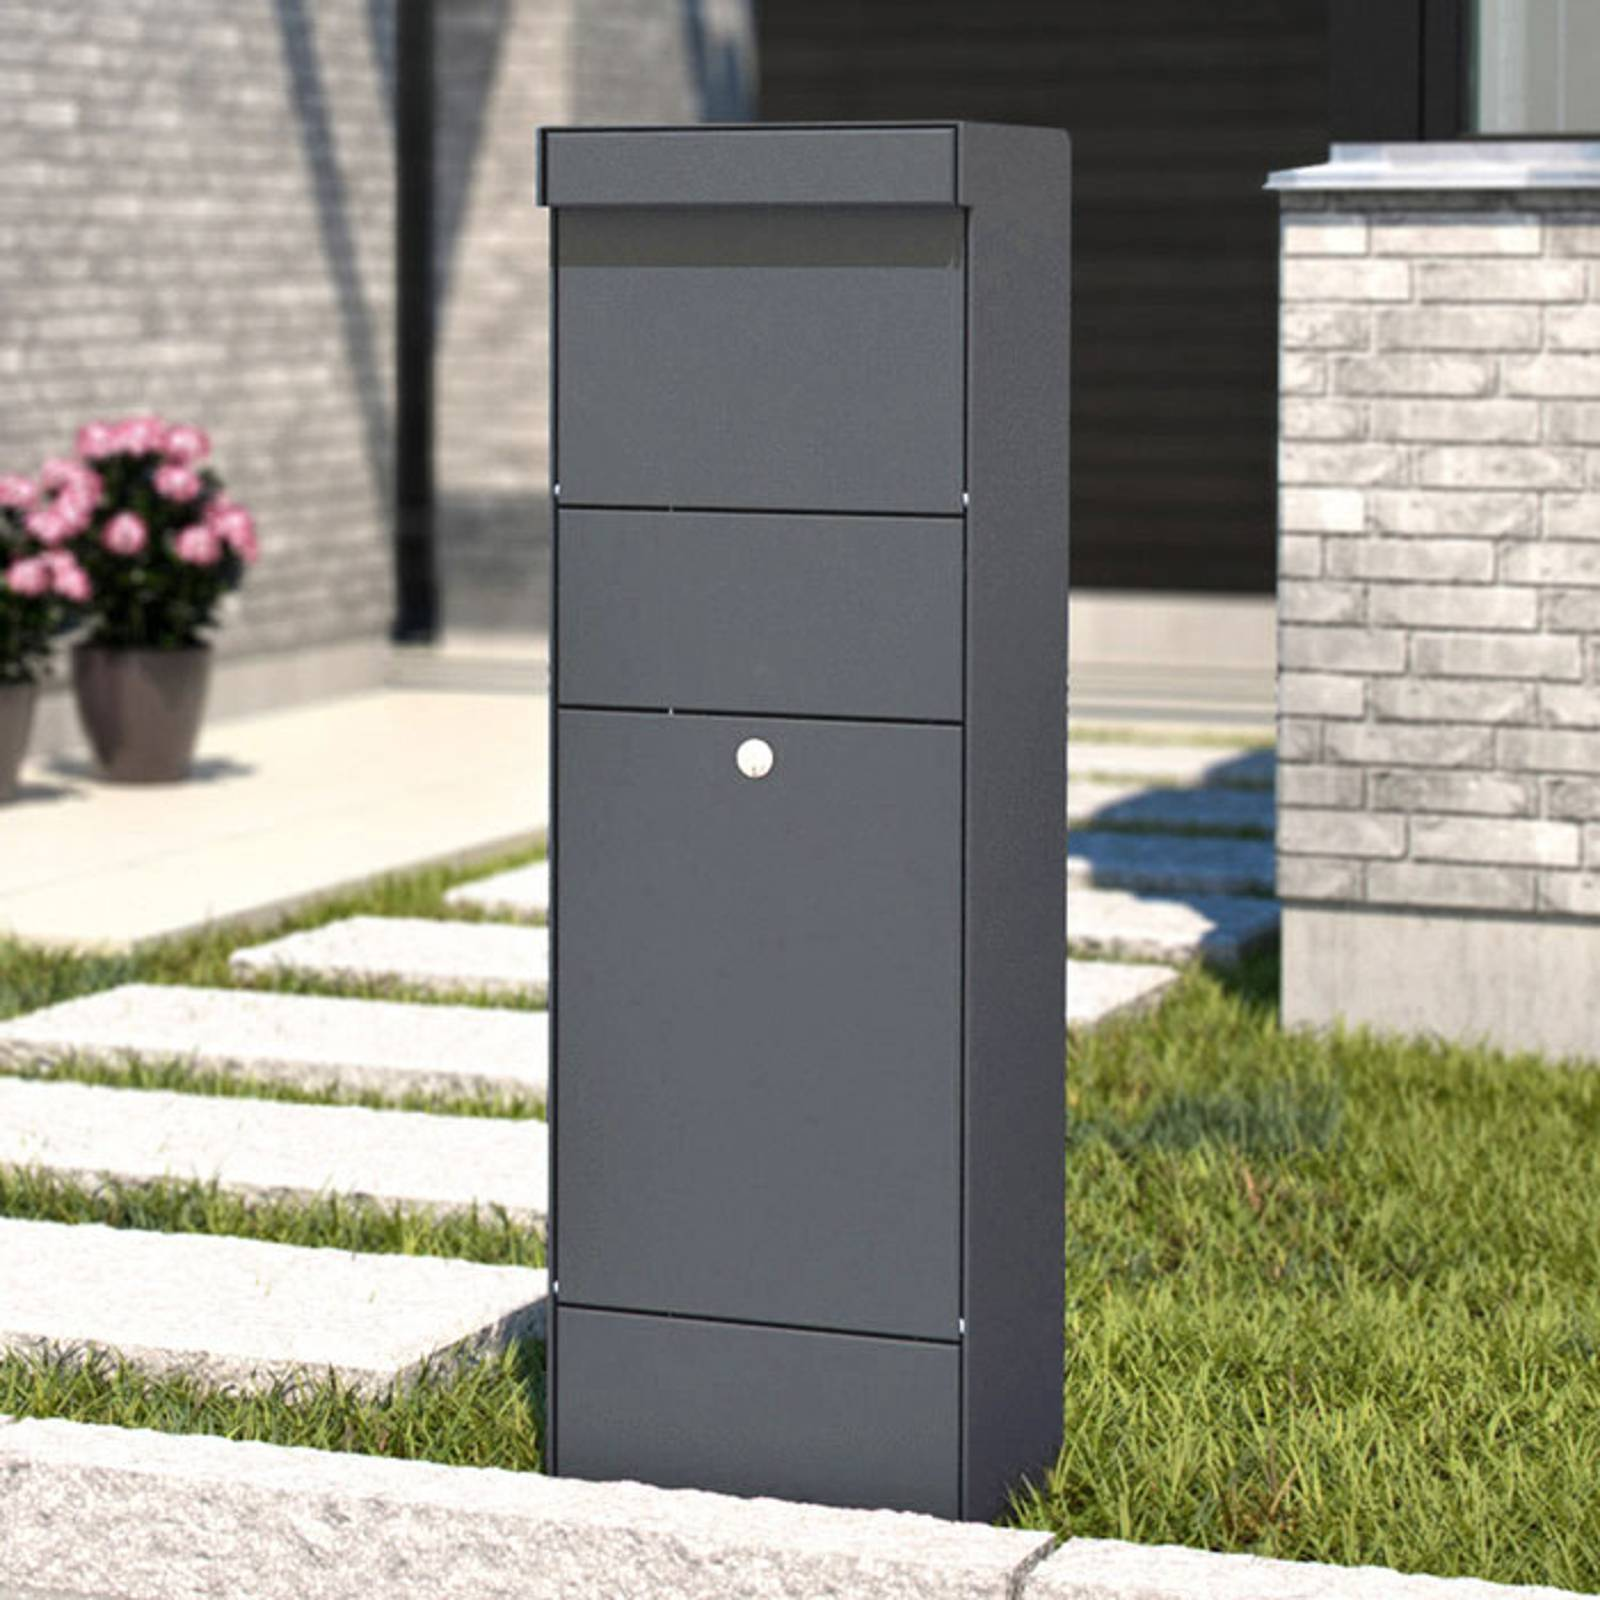 Stand letterbox Parcel anthracite from Juliana